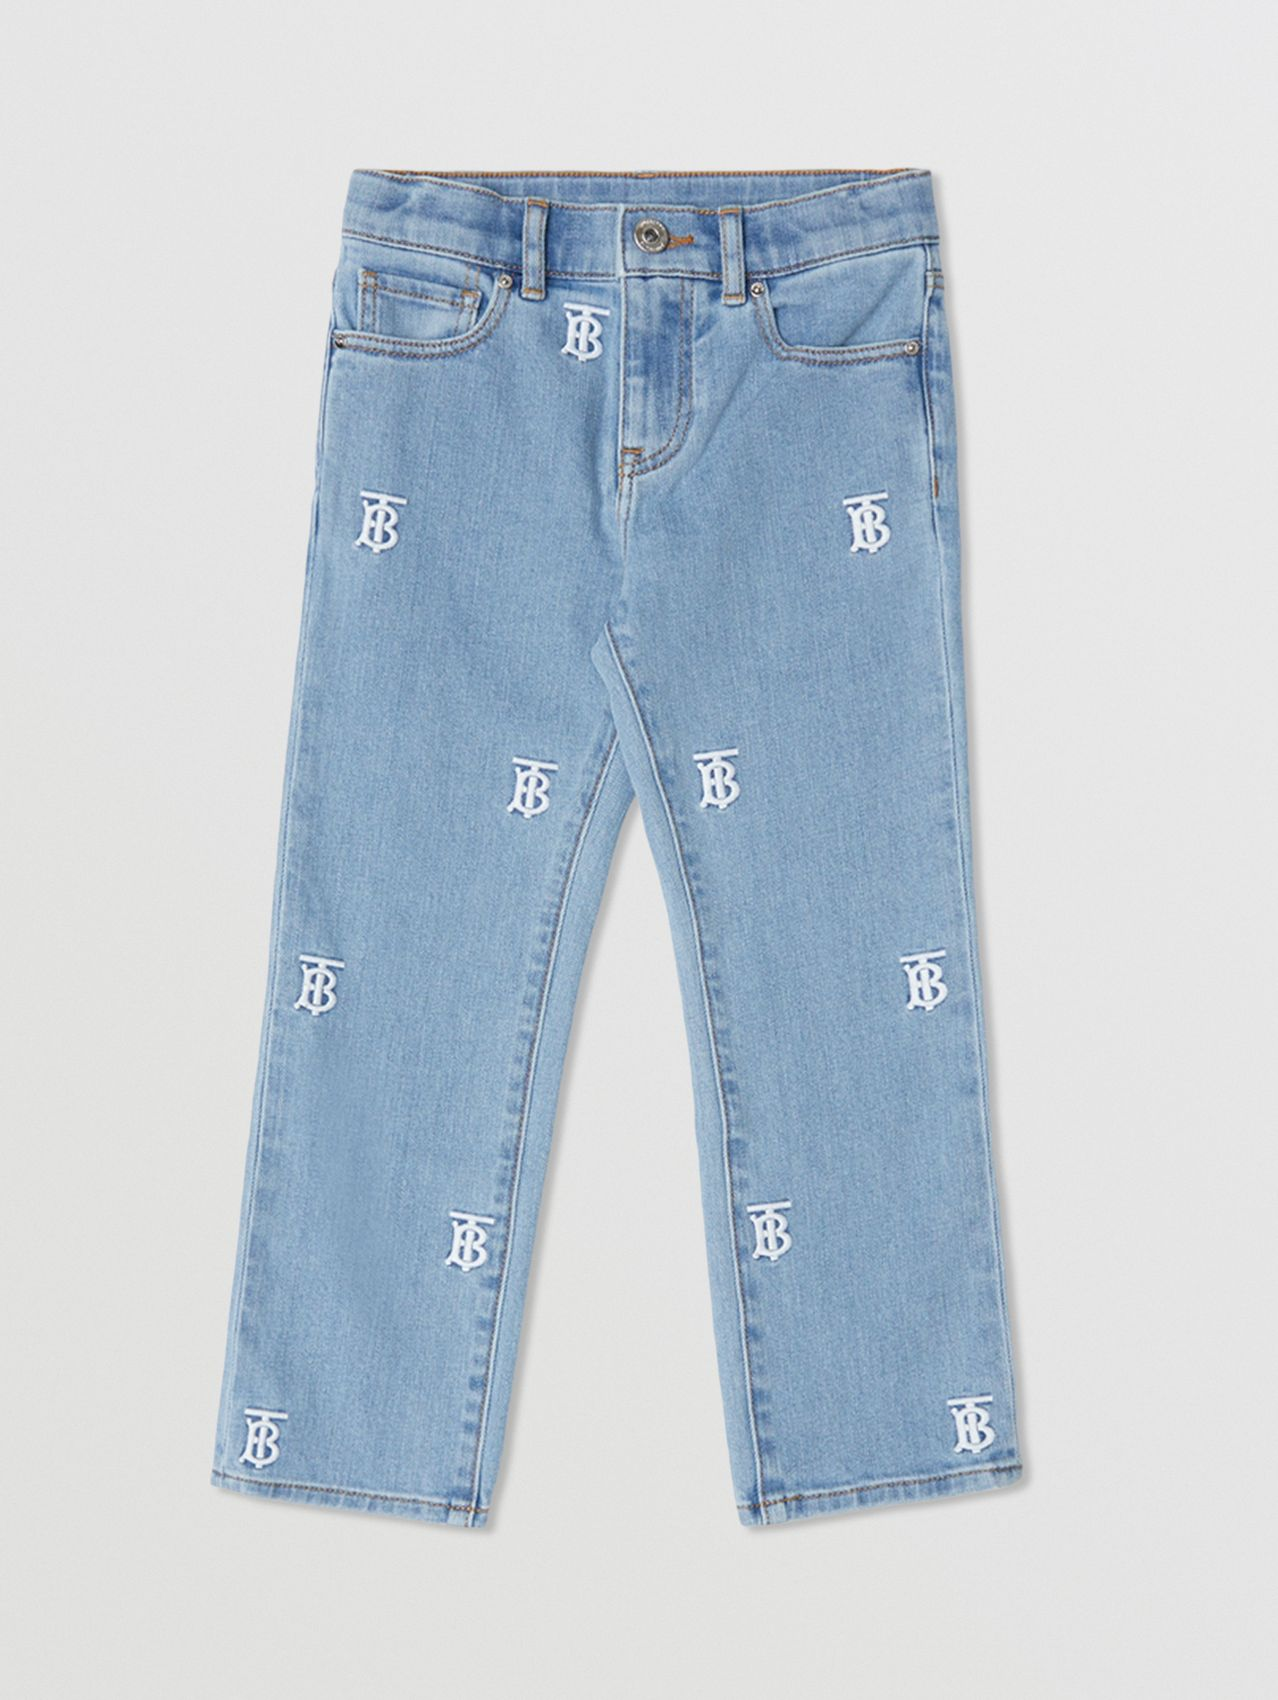 Monogram Motif Stretch Denim Jeans in Pale Blue